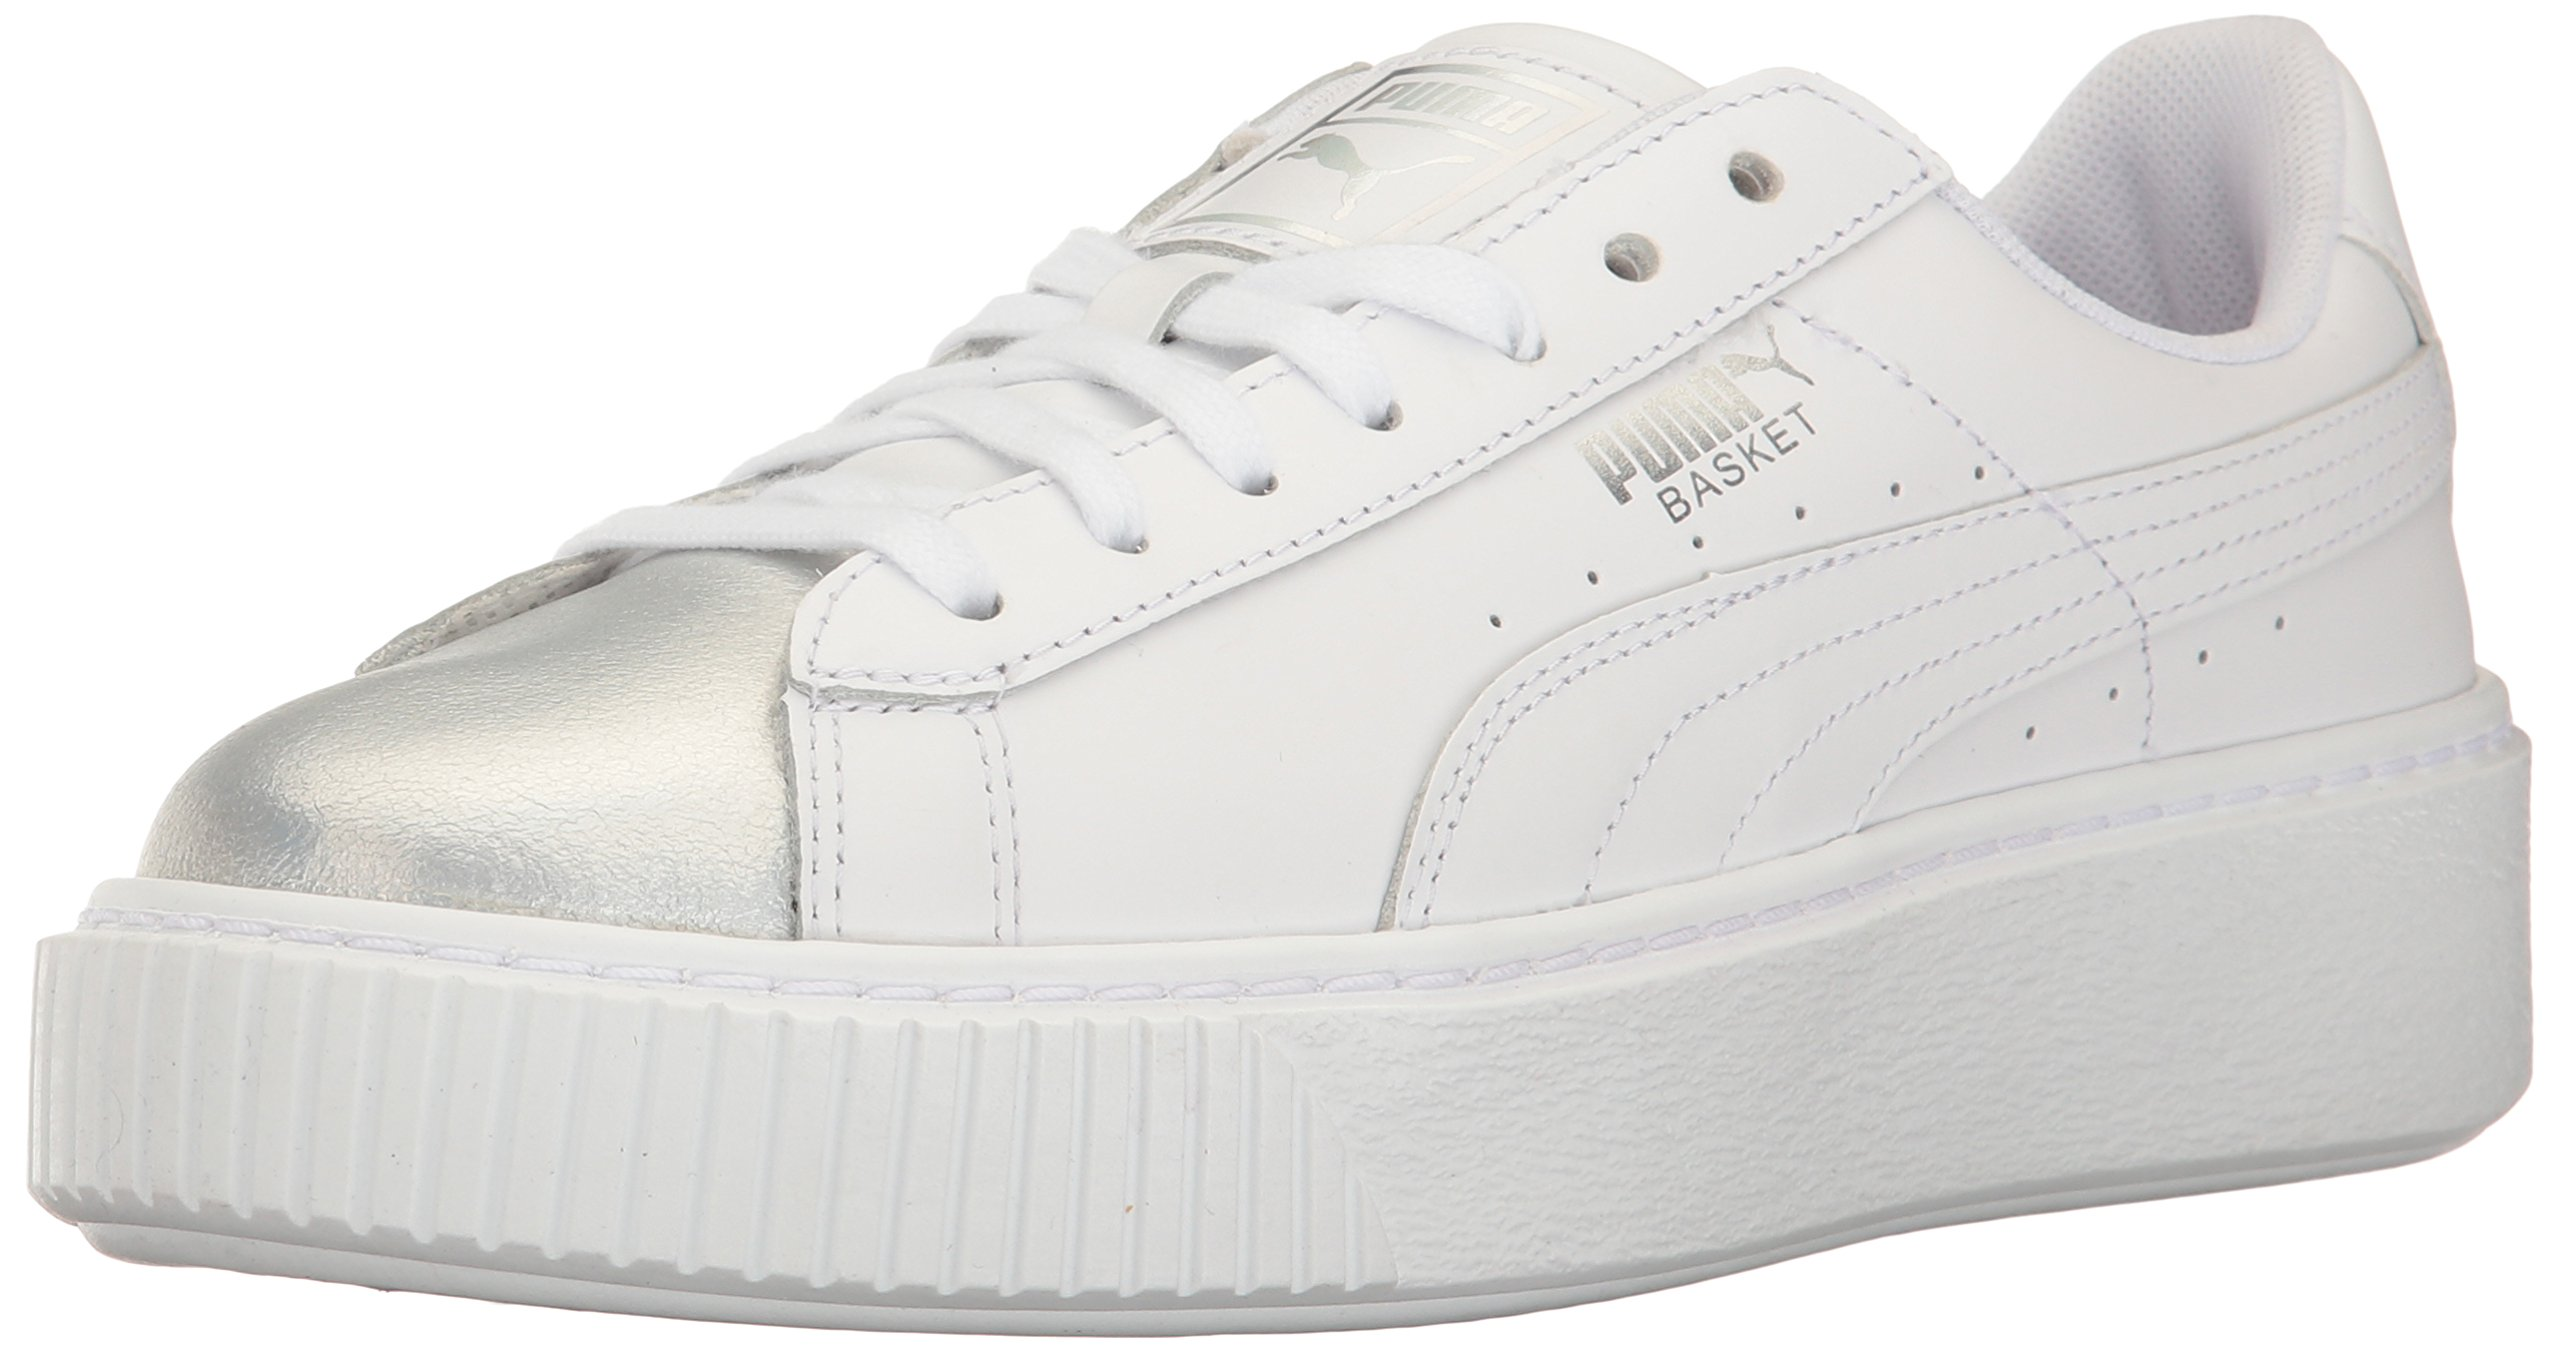 PUMA Women's Basket Platform Iridescent Field Hockey Shoe, White-Bluefish, 7 M US